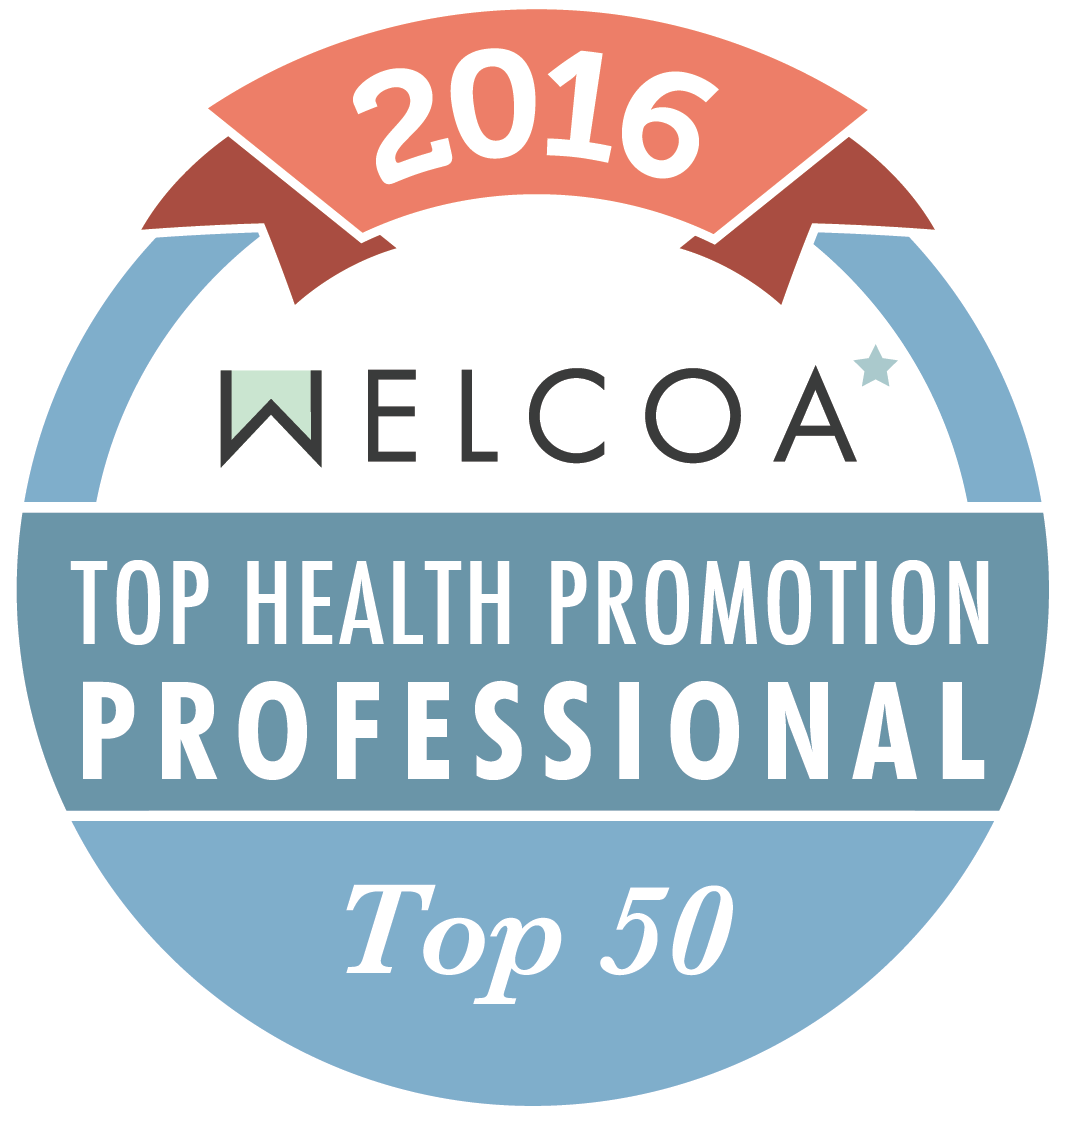 2016 WELCOA top health promotion professional top 50